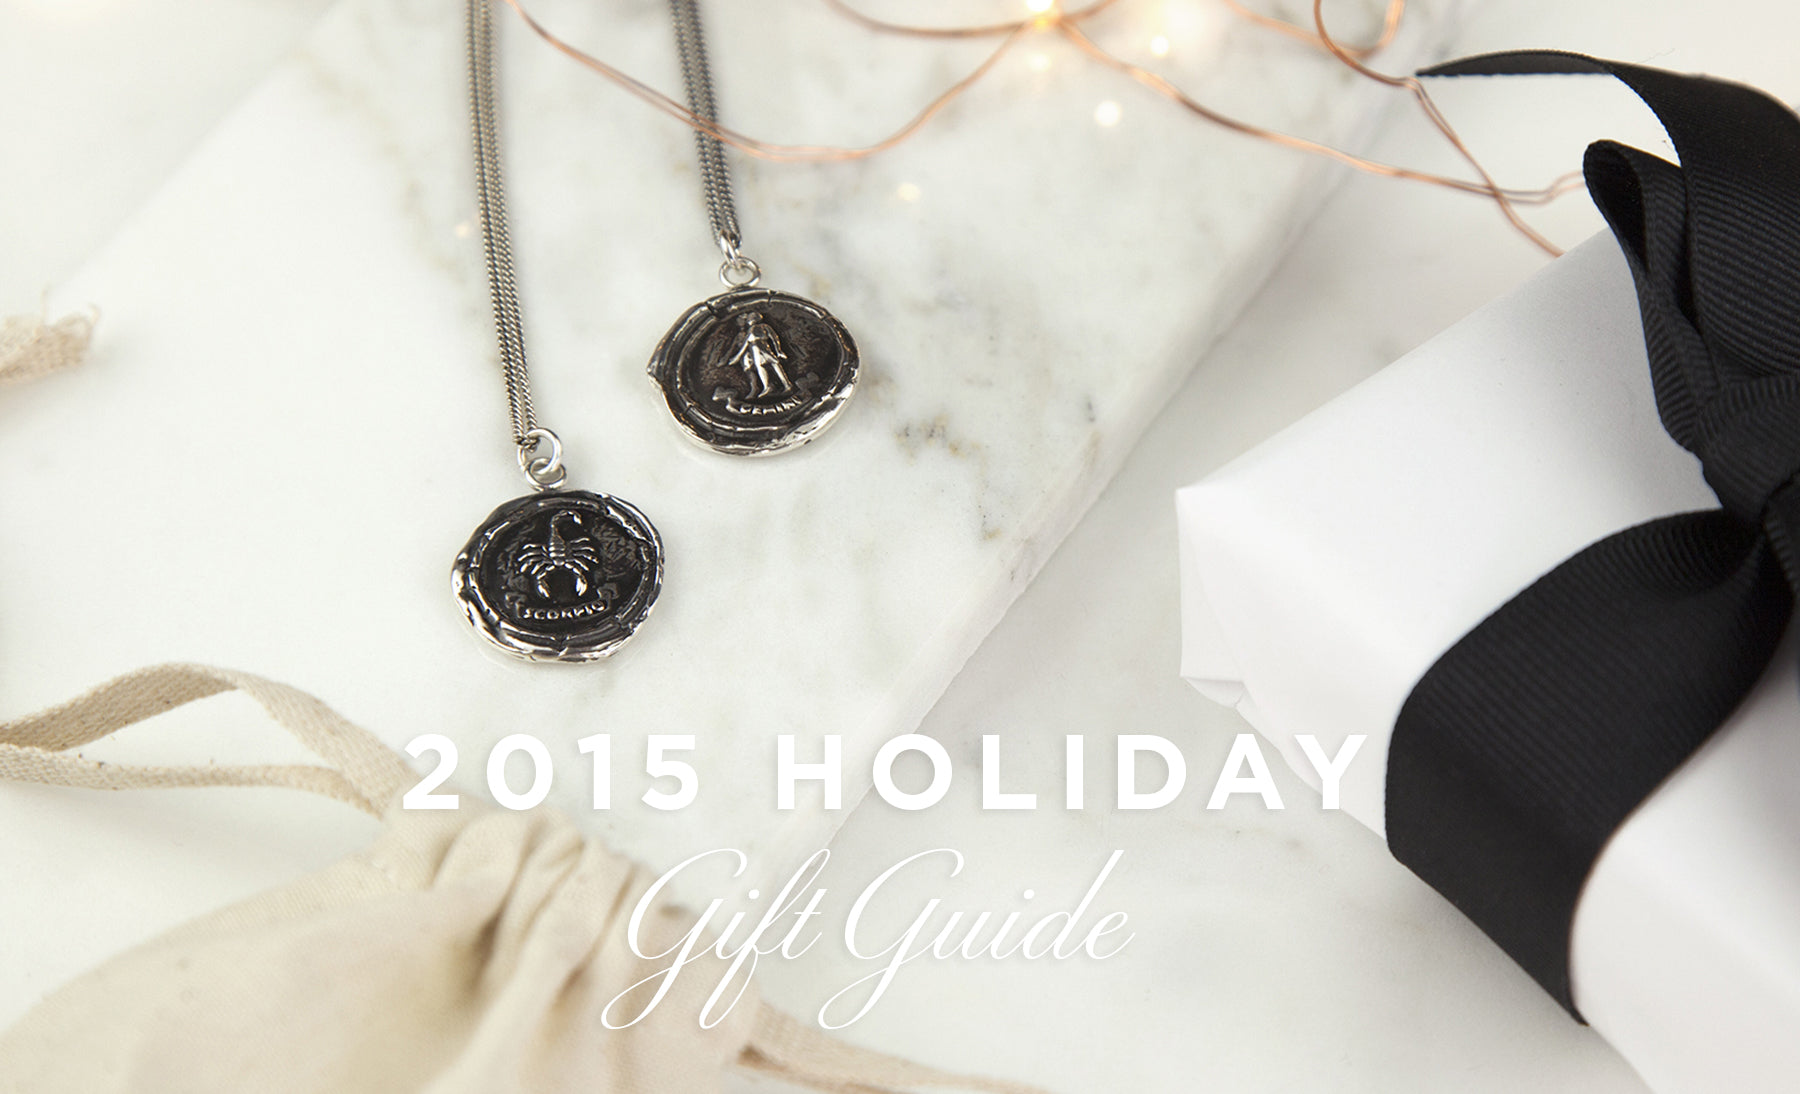 Pyrrha Holiday Gift Guide 2015